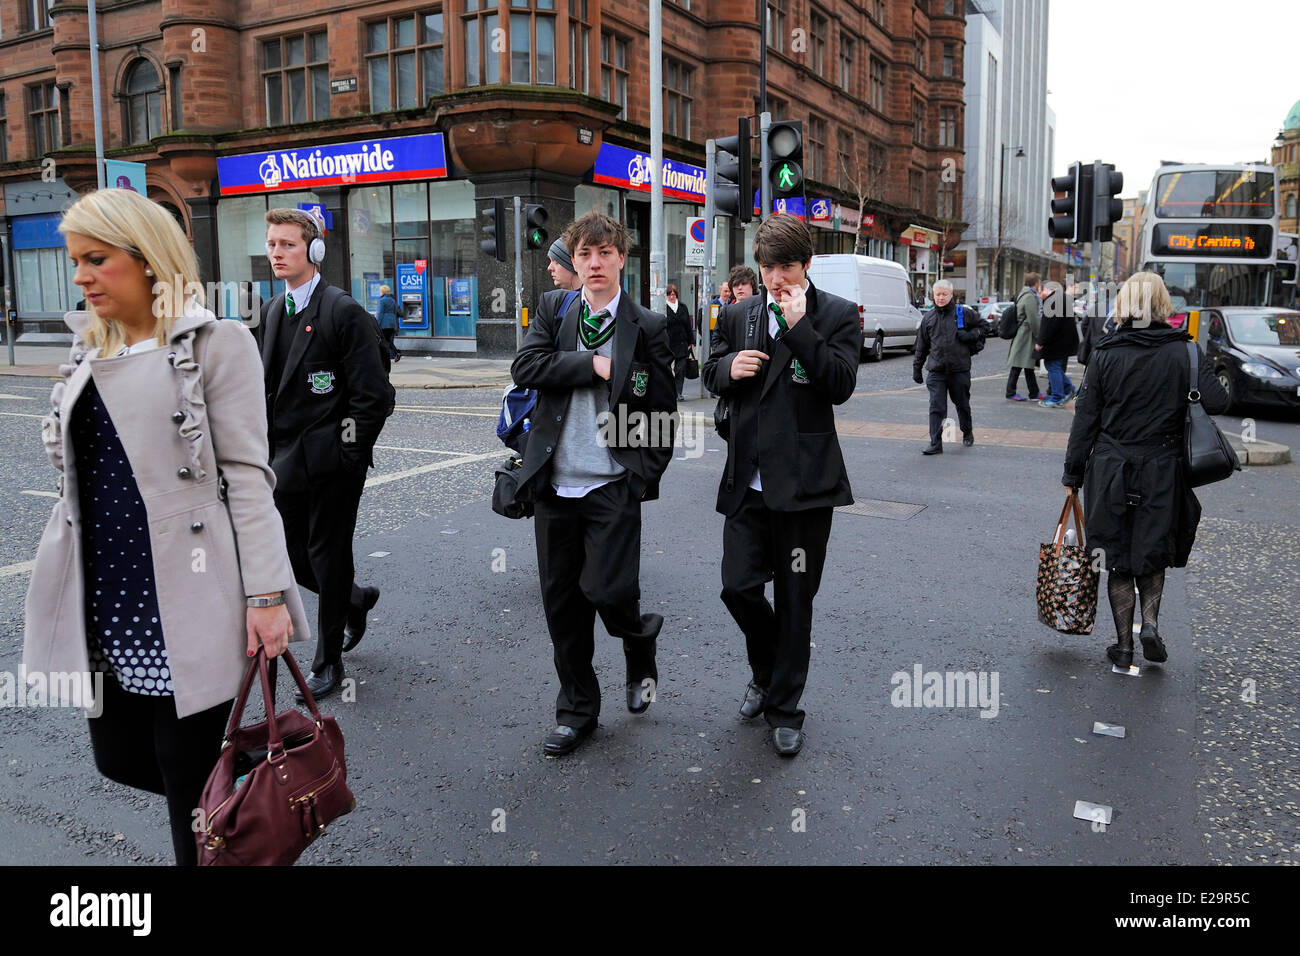 United Kingdom, Northern Ireland, Belfast, schoolchildren in uniforms after school on Donegall Square - Stock Image